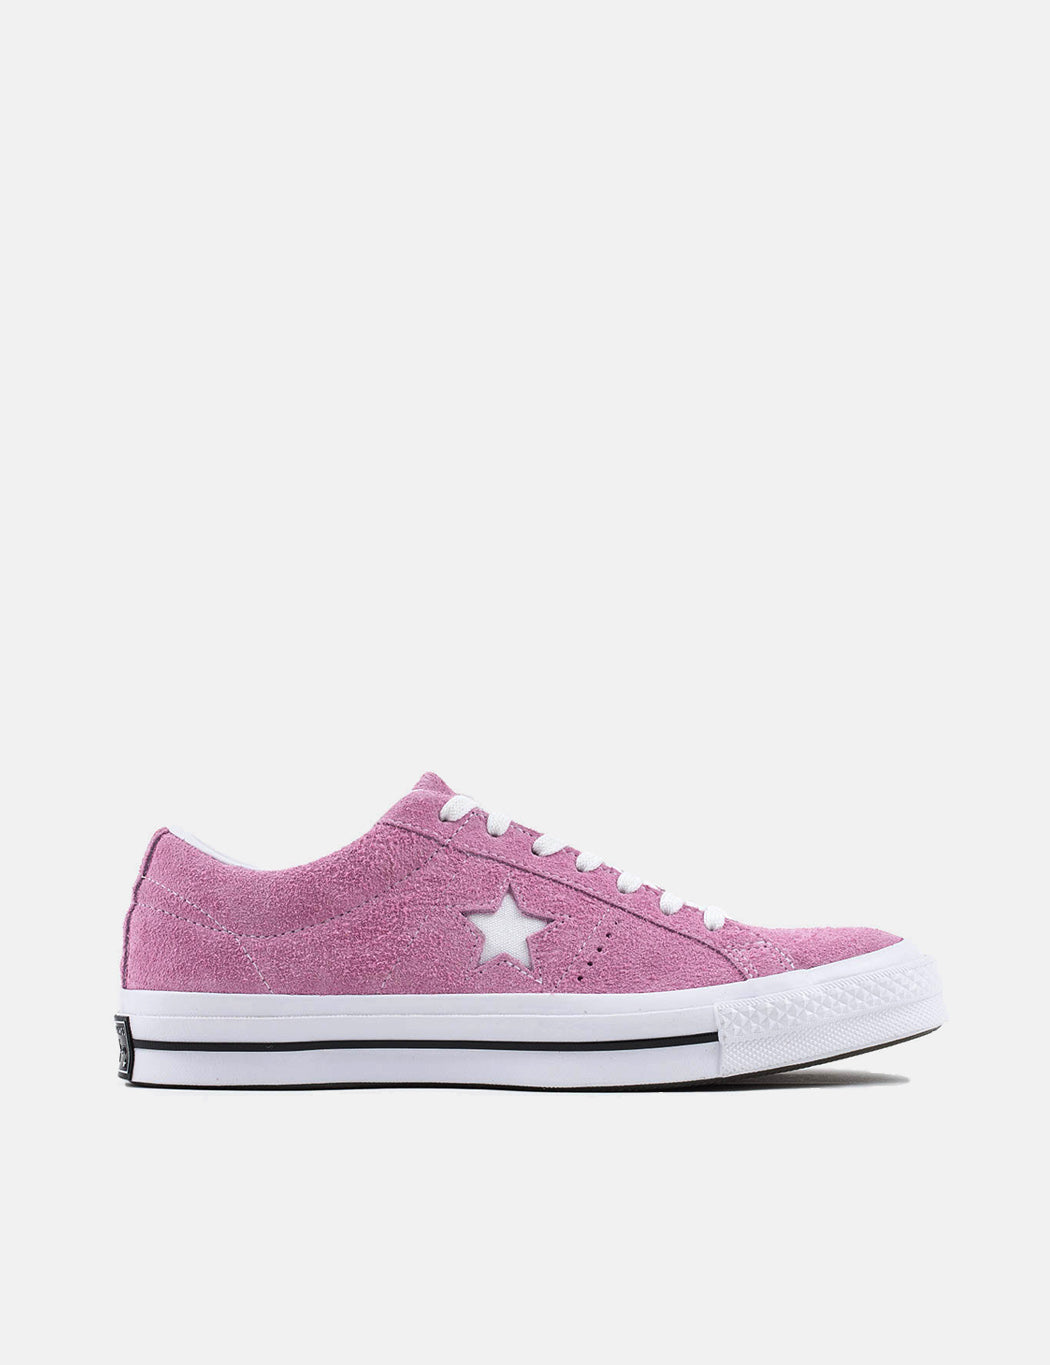 89eebb622598d0 Converse One Star Ox Low Suede (159492C) - Light Orchid White Black ...